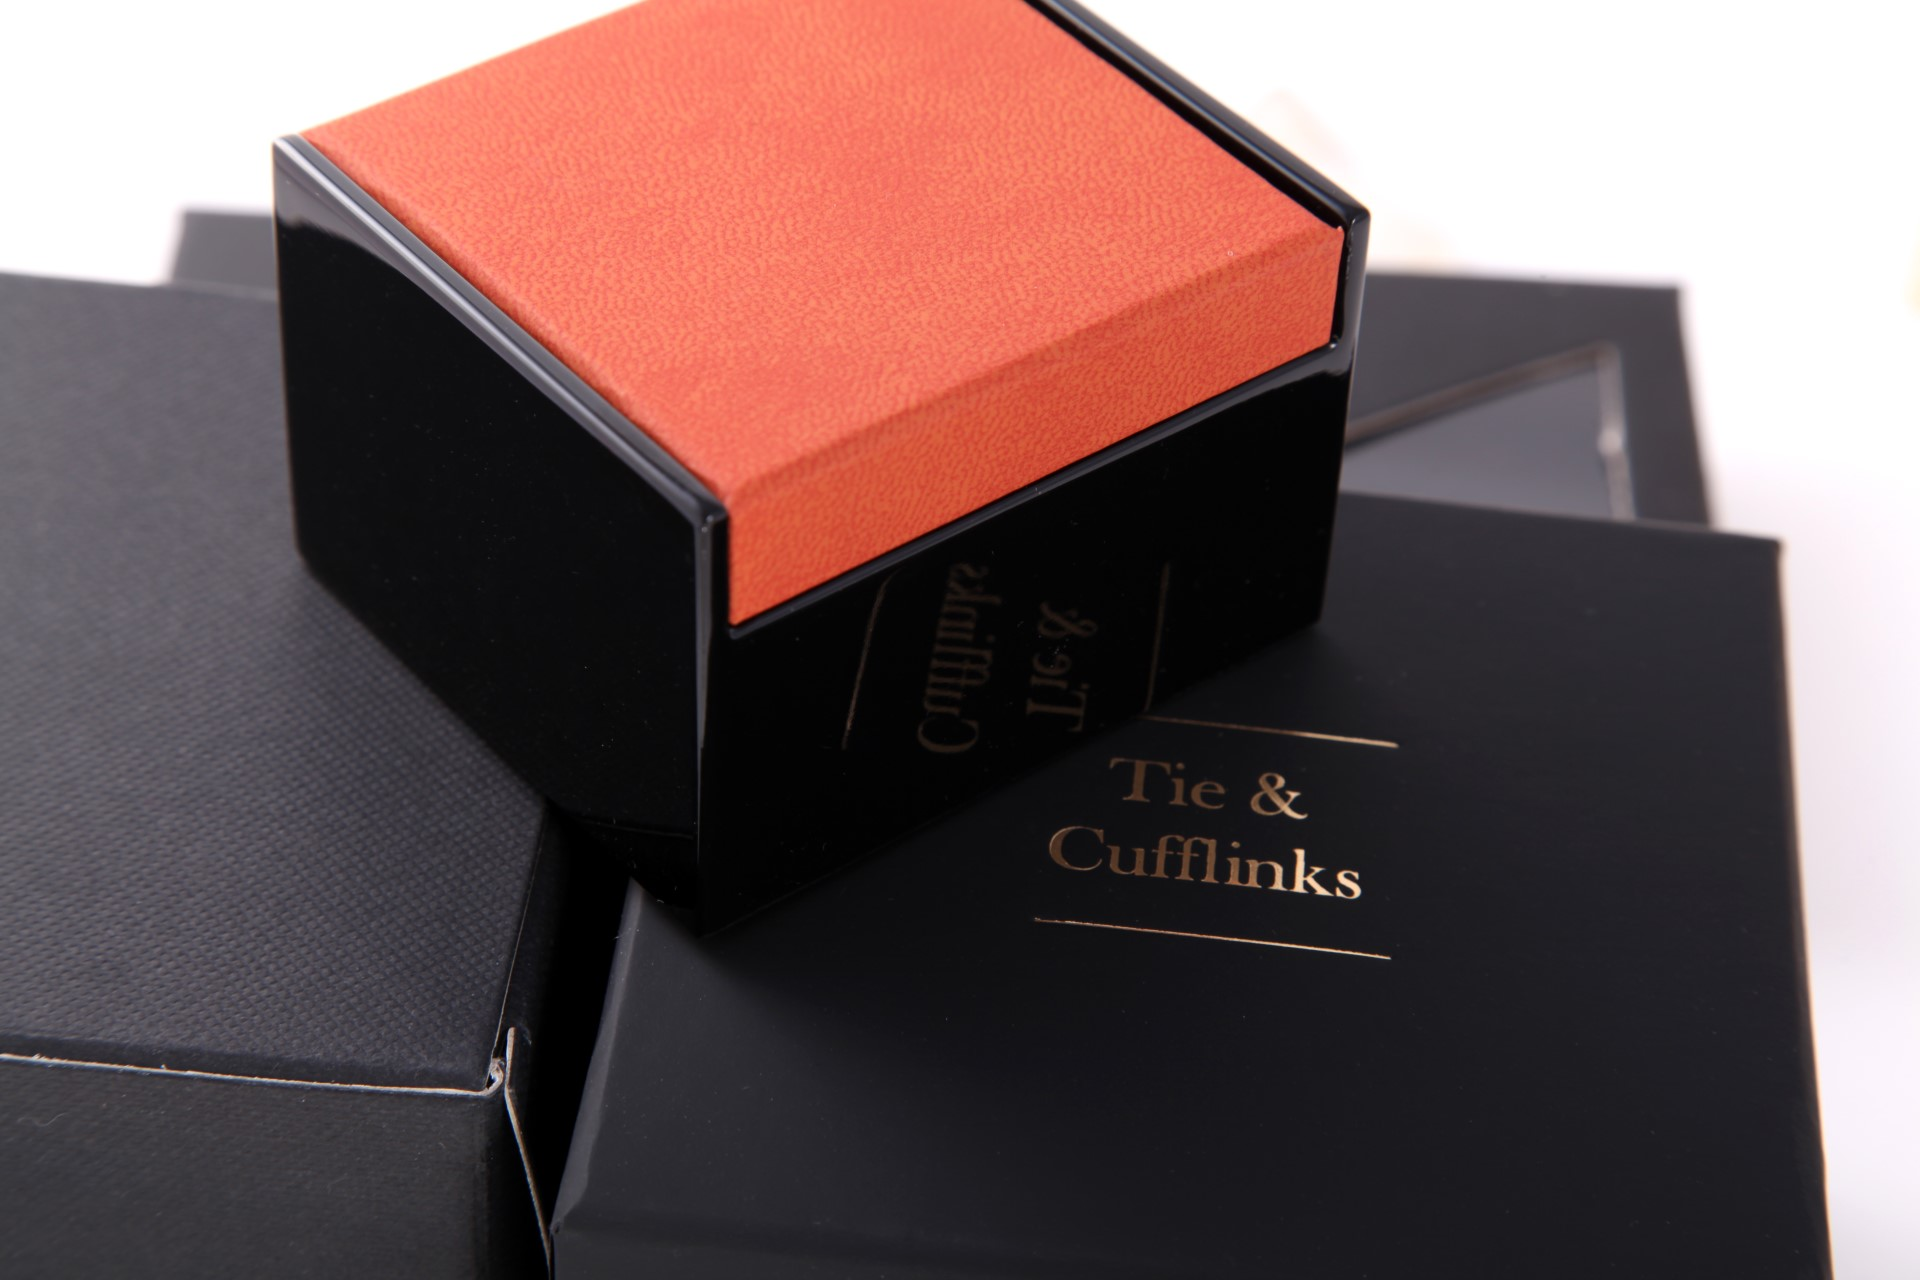 Fox & Chave Cufflinks and Tie Packaging